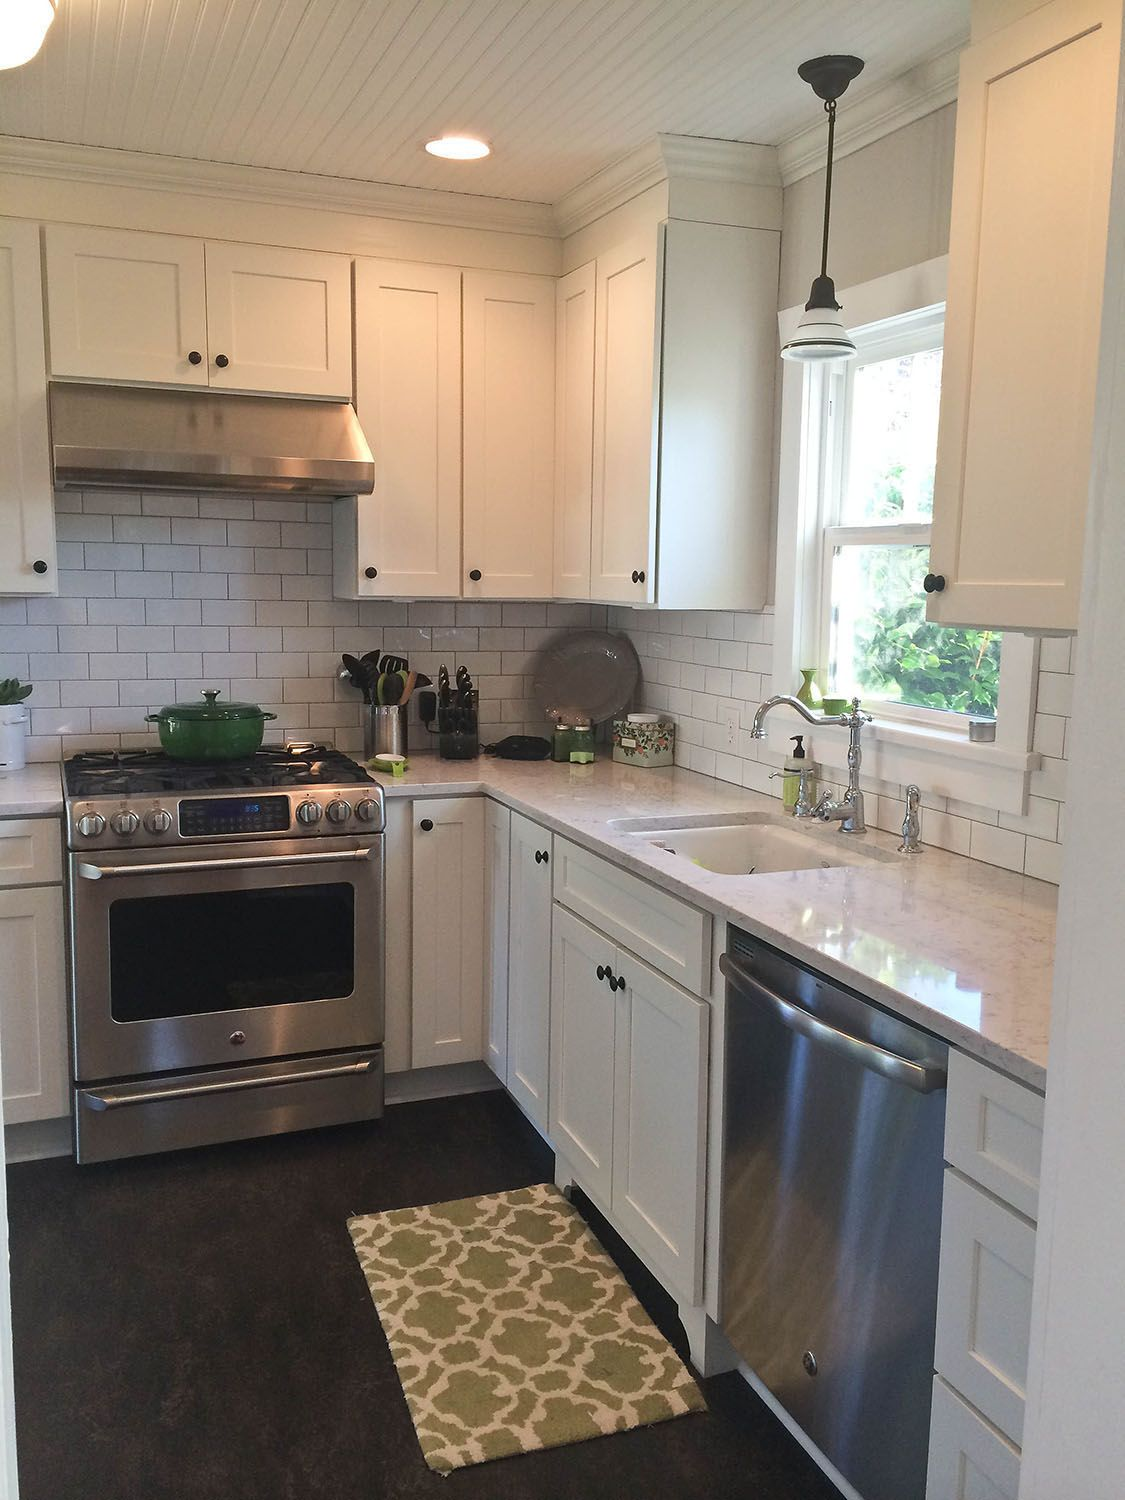 Backsplash Ideas For Small Kitchen Glass Knobs Cabinets 12 Popular Layout Design Home White How To Plan A Perfect I Would Make The Counters Black Though